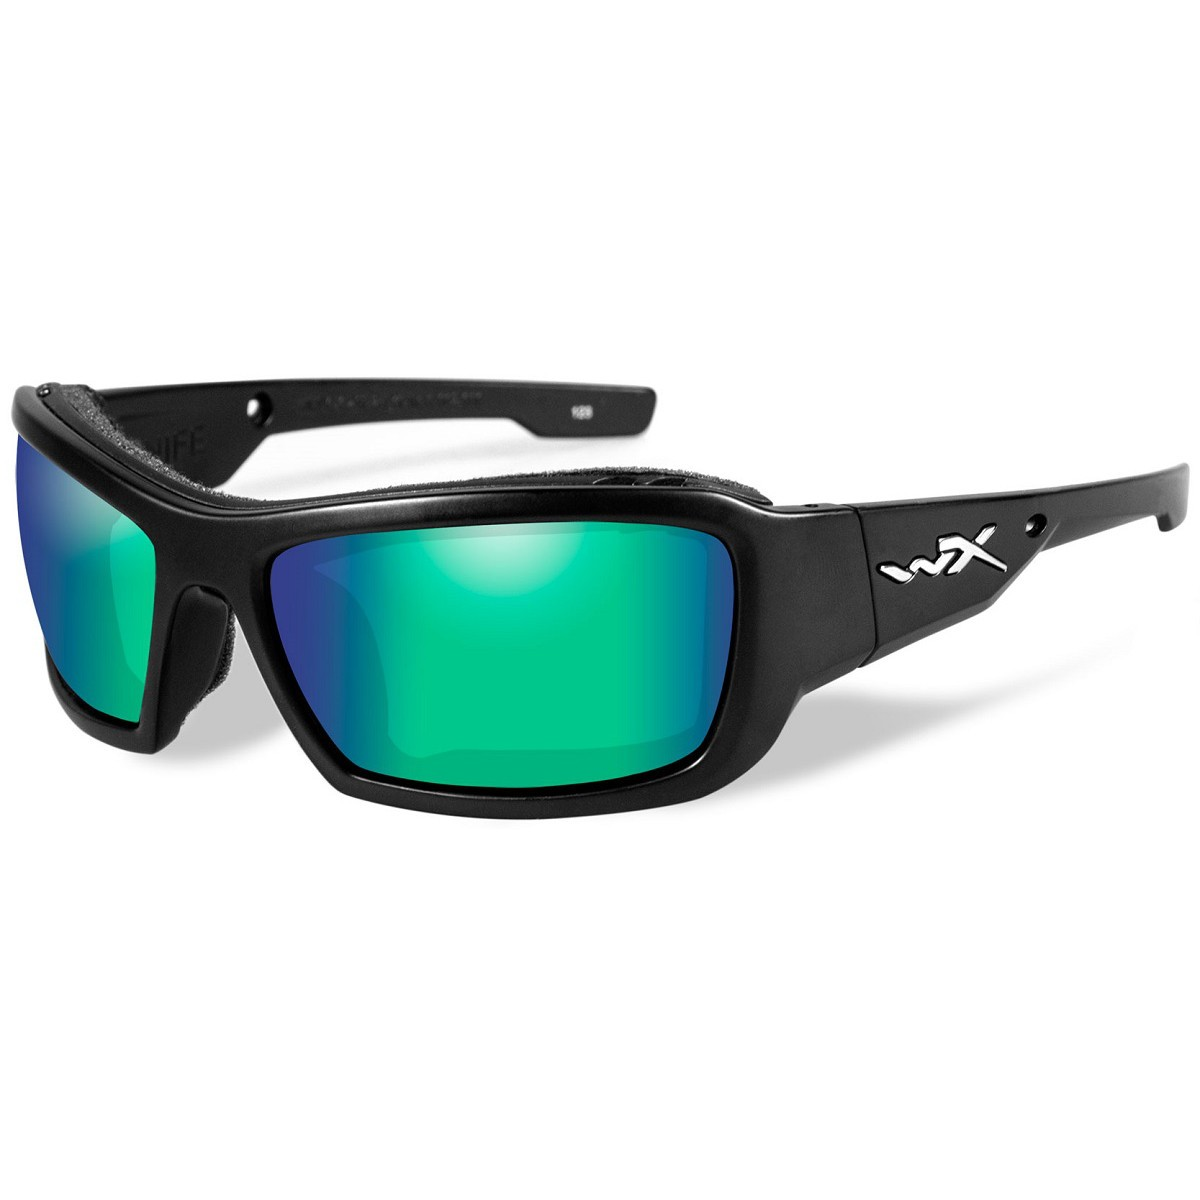 9e91c84145 Wiley X CCKNI07 WX Knife Sunglasses - Matte Black Frame - Polarized Emerald  Lens